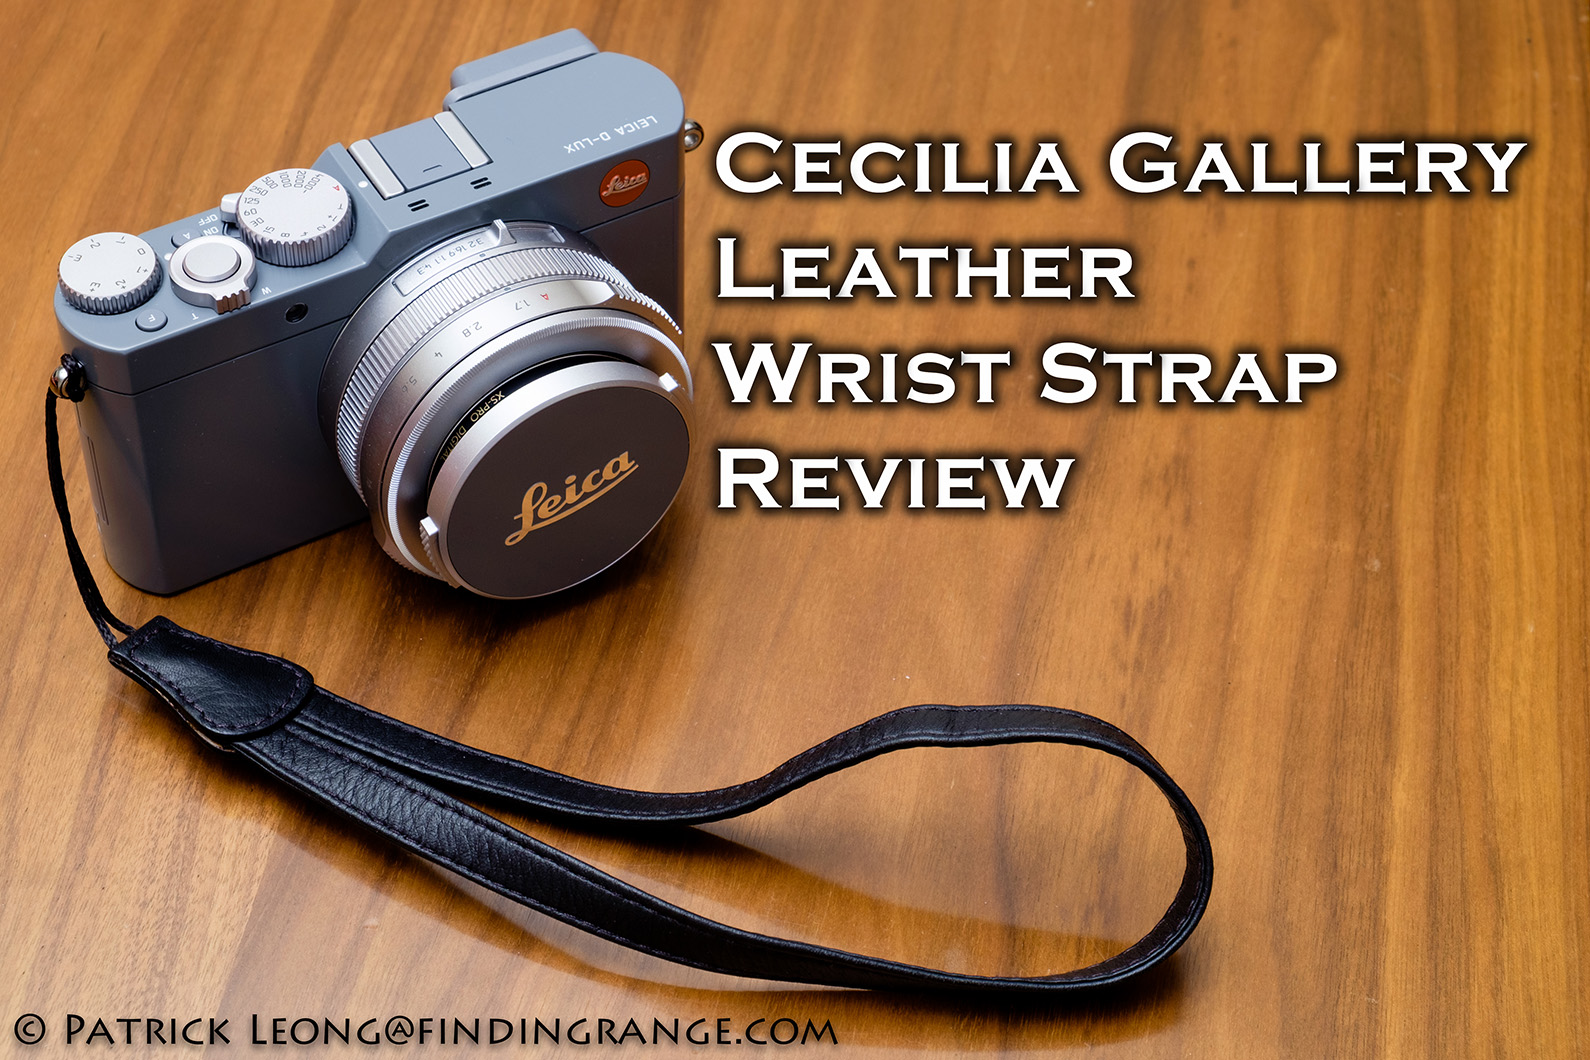 Cecilia-Gallery-Leather-Wrist-Strap-Review-1